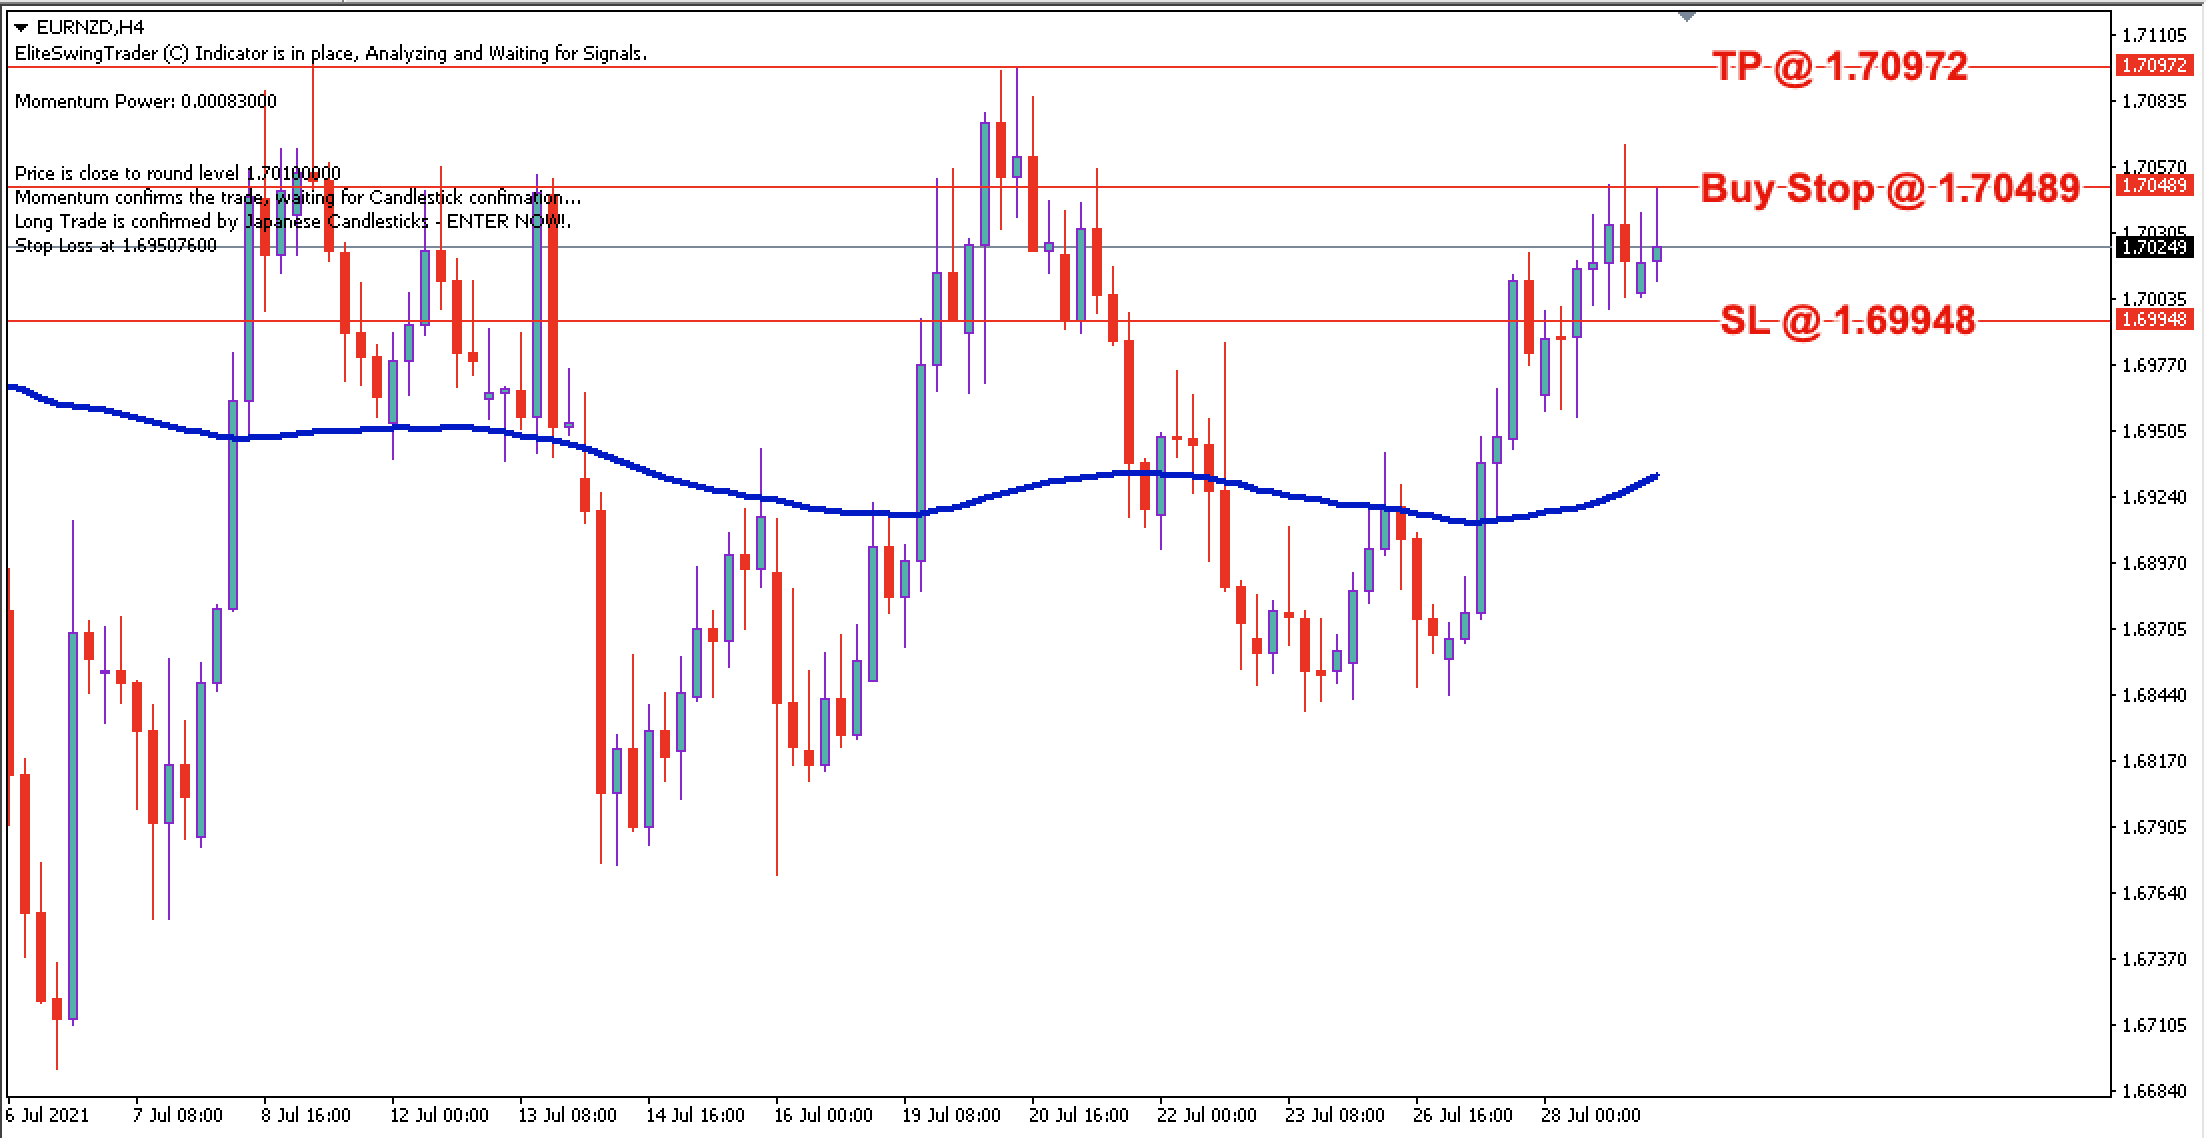 EUR/NZD Daily Price Forecast – 29th July 2021